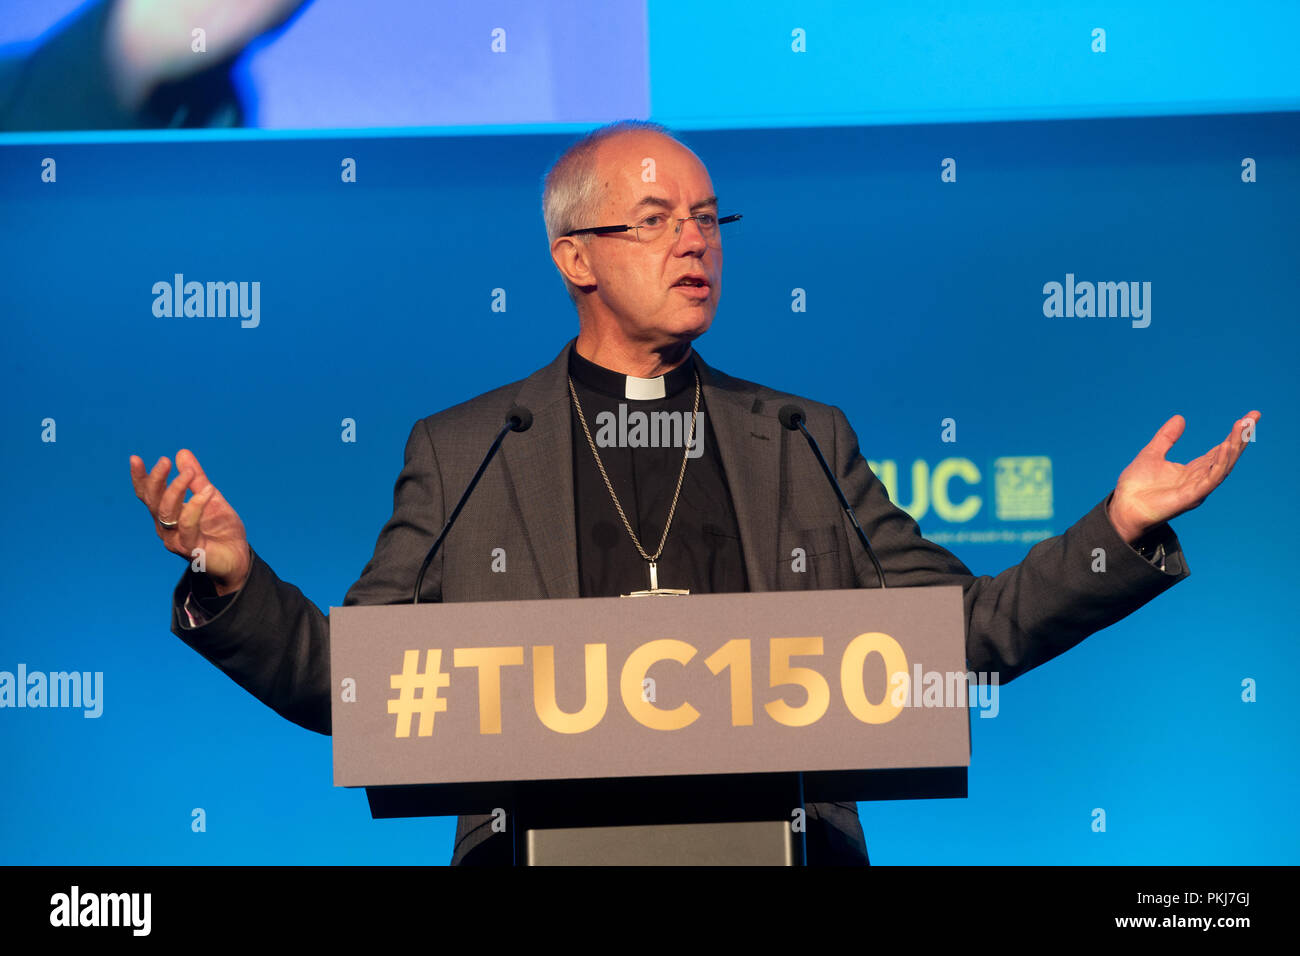 Archbishop of Canterbury, Justin Welby, speaking at the TUC conference. He criticised big companies like Amazon for dodging their fair share of tax. - Stock Image